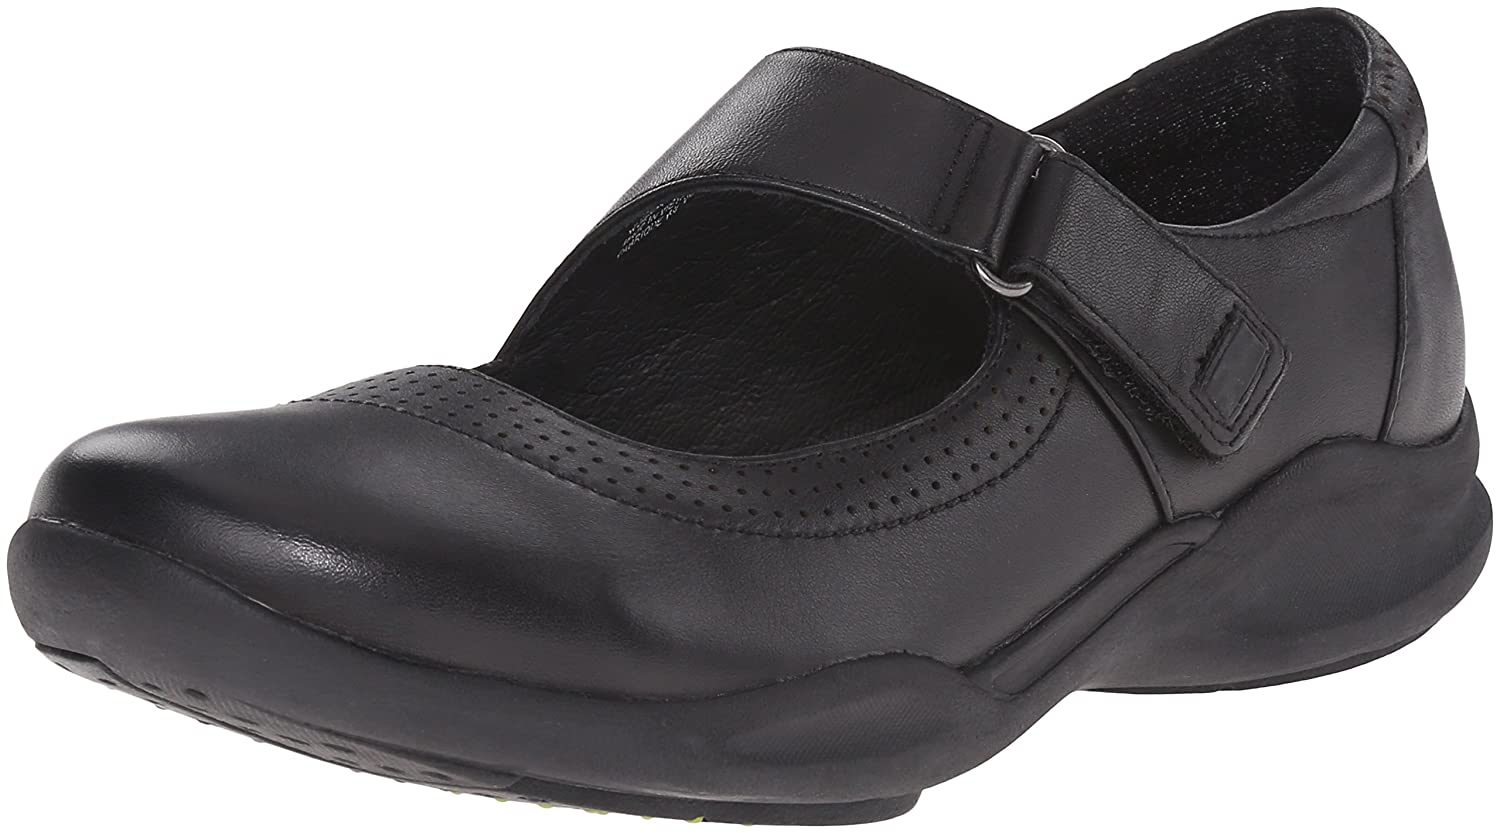 CLARKS Women's Wave Wish Mary Jane Flat B011W8Q778 7 W US|Black Leather